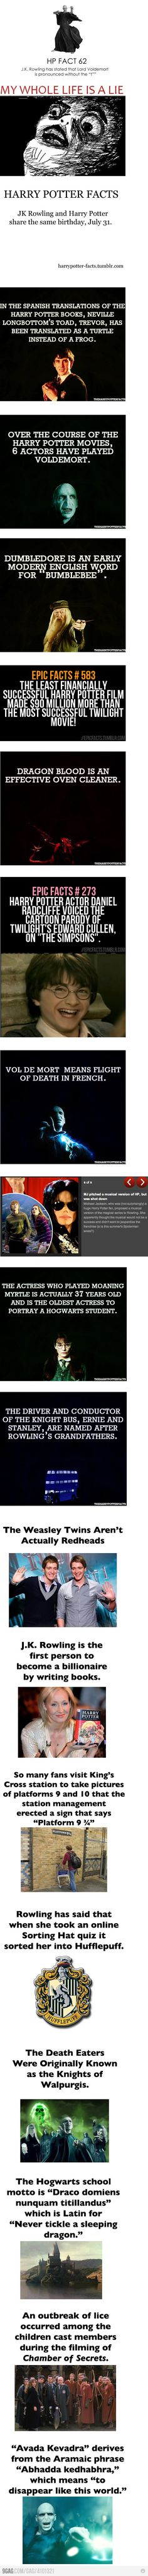 hp facts... my whole life has changed